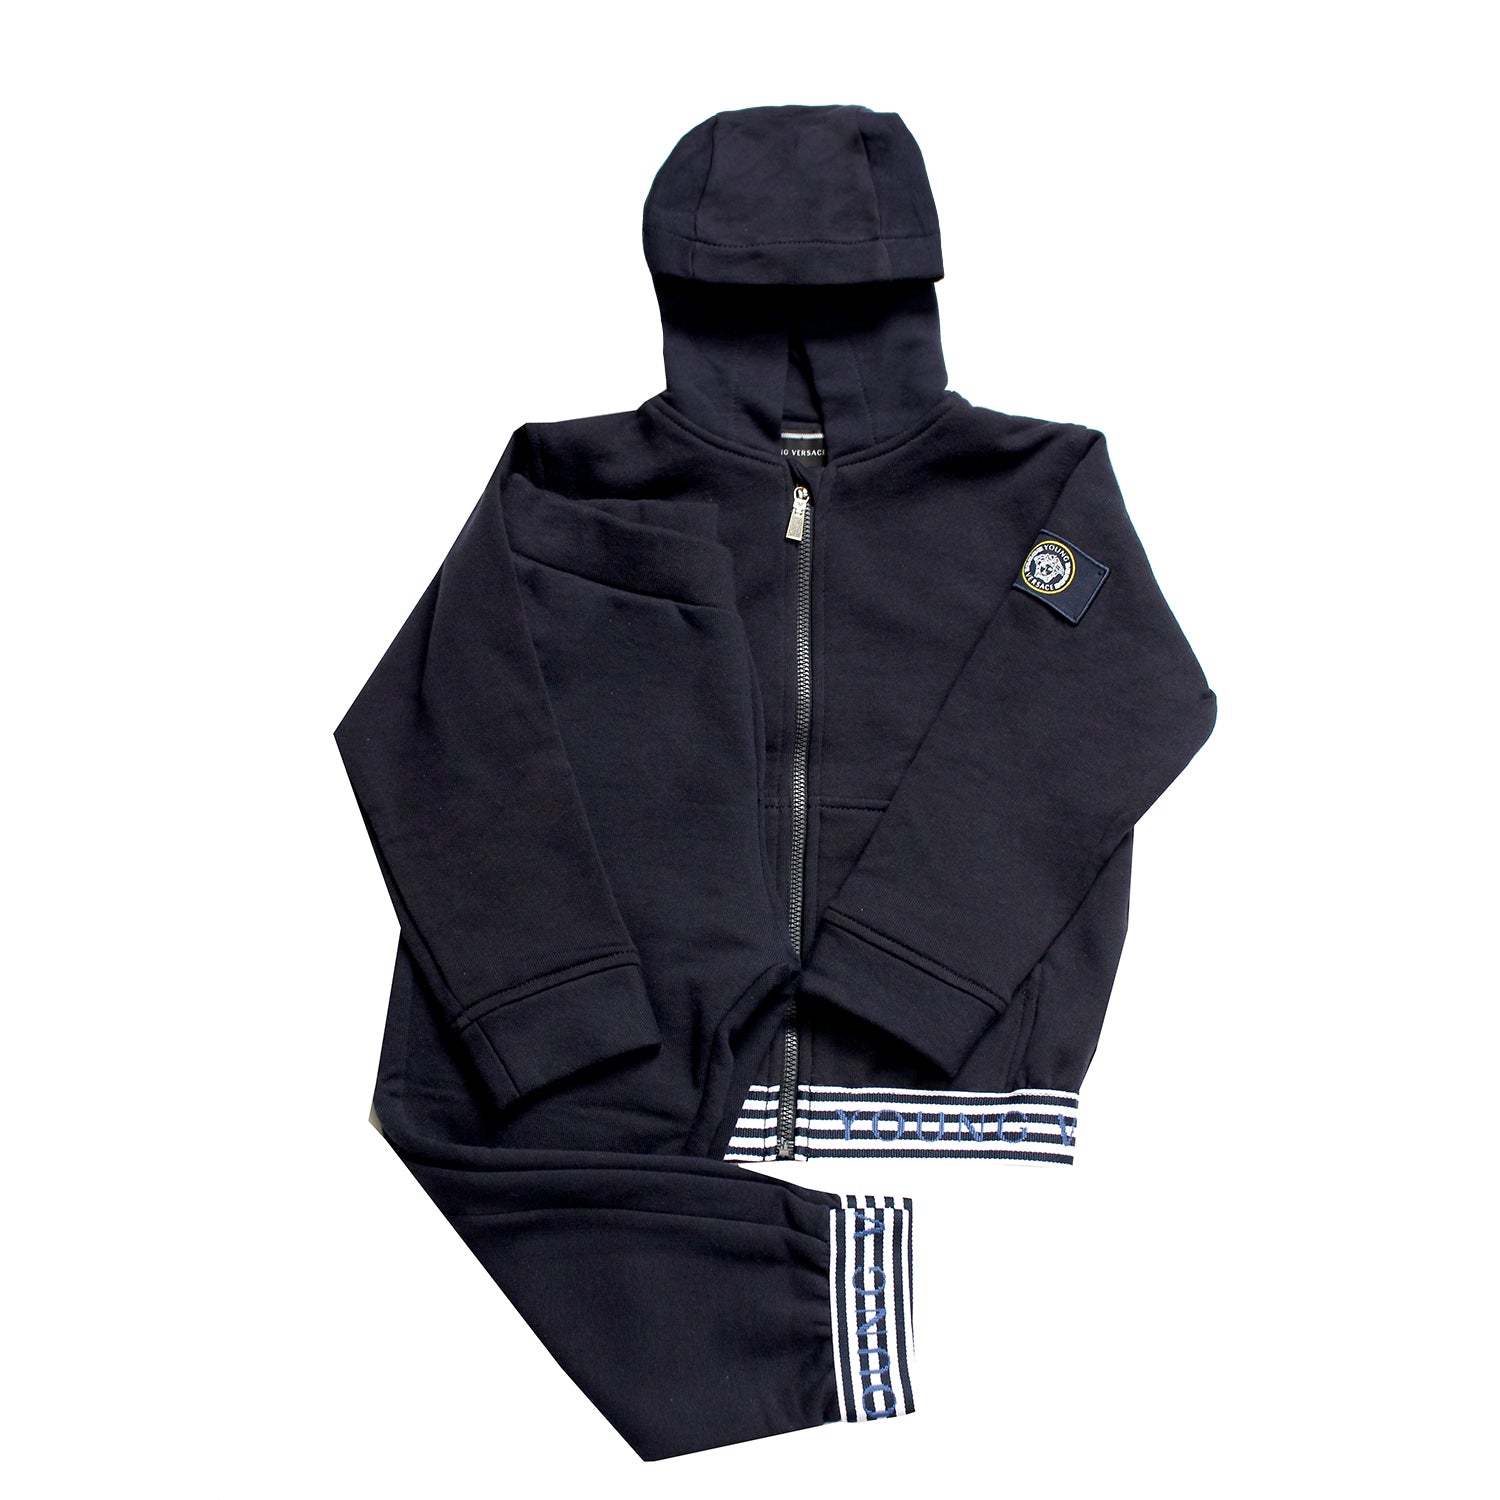 Boys Zipper Sweat Set